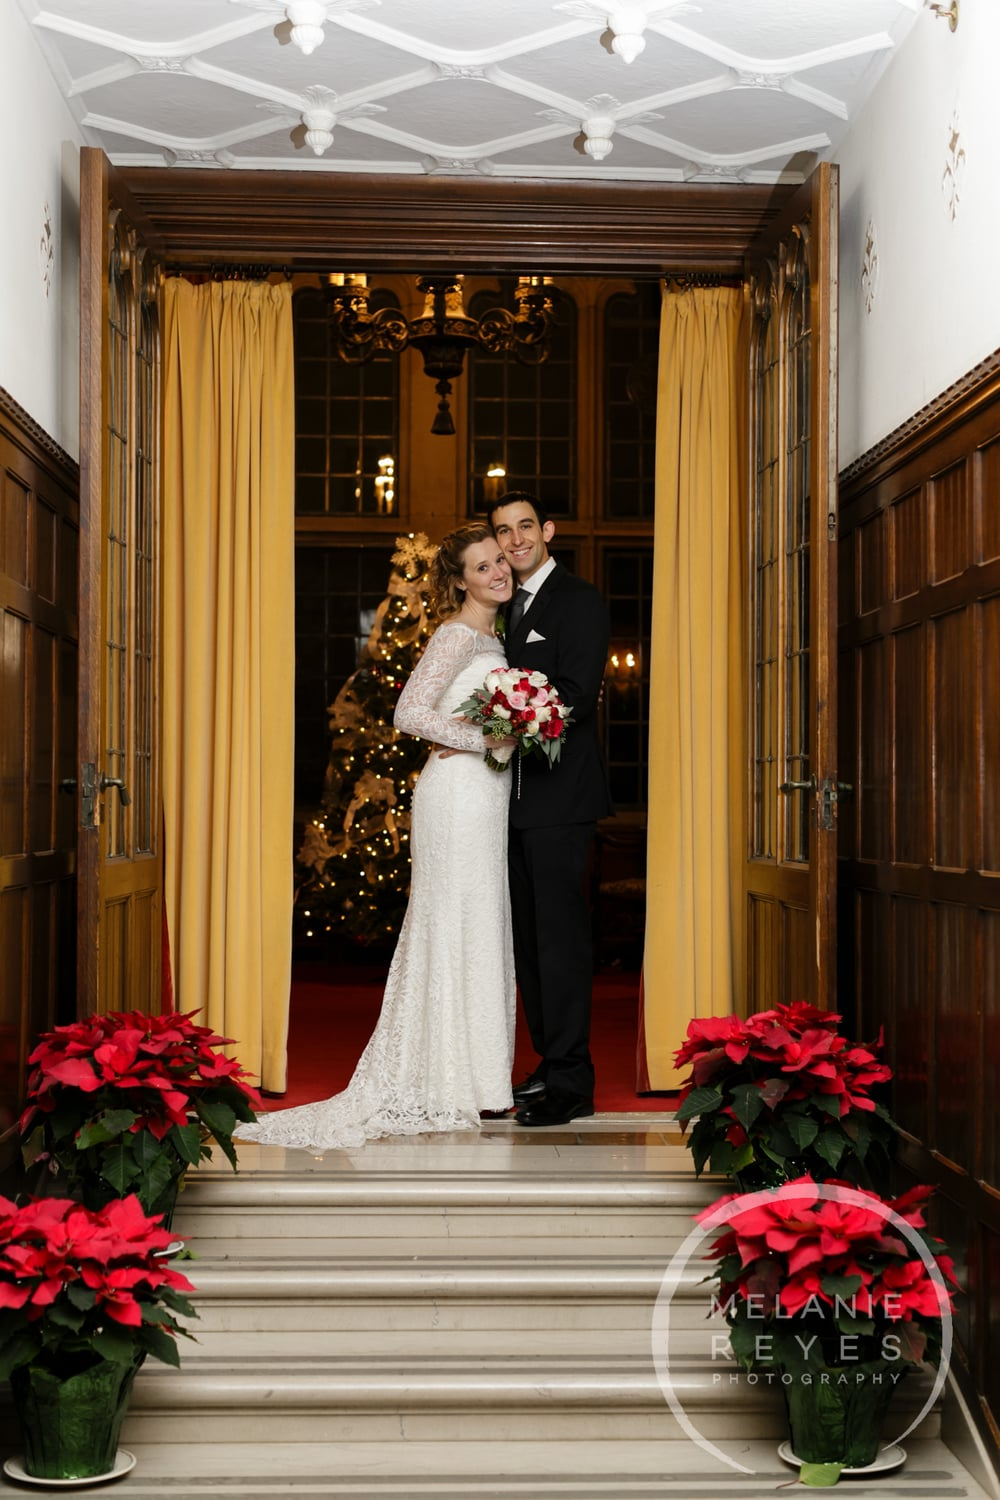 2015_ann_arbor_wedding_photographer_melaniereyes_038.JPG